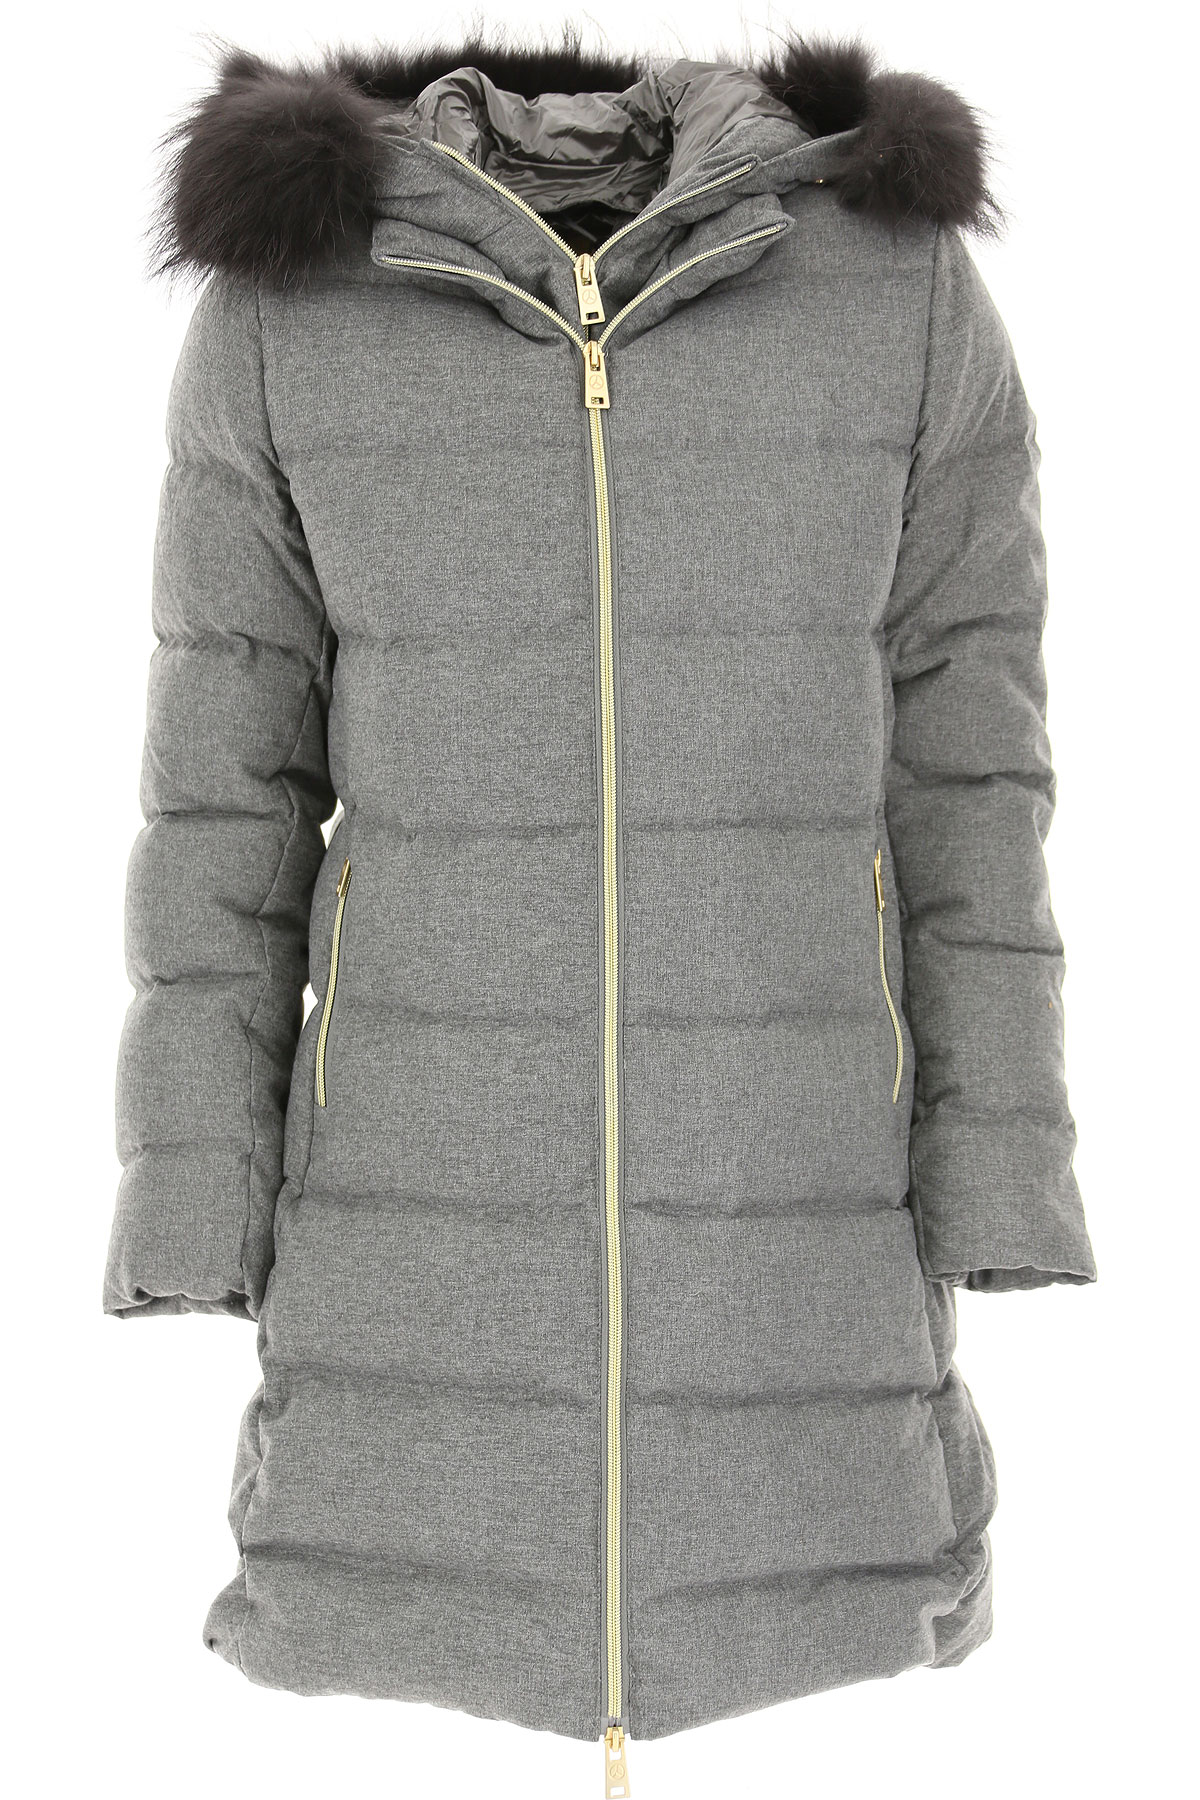 People of Shibuya Down Jacket for Women, Puffer Ski Jacket On Sale, Light Grey, polyester, 2019, 10 4 6 8